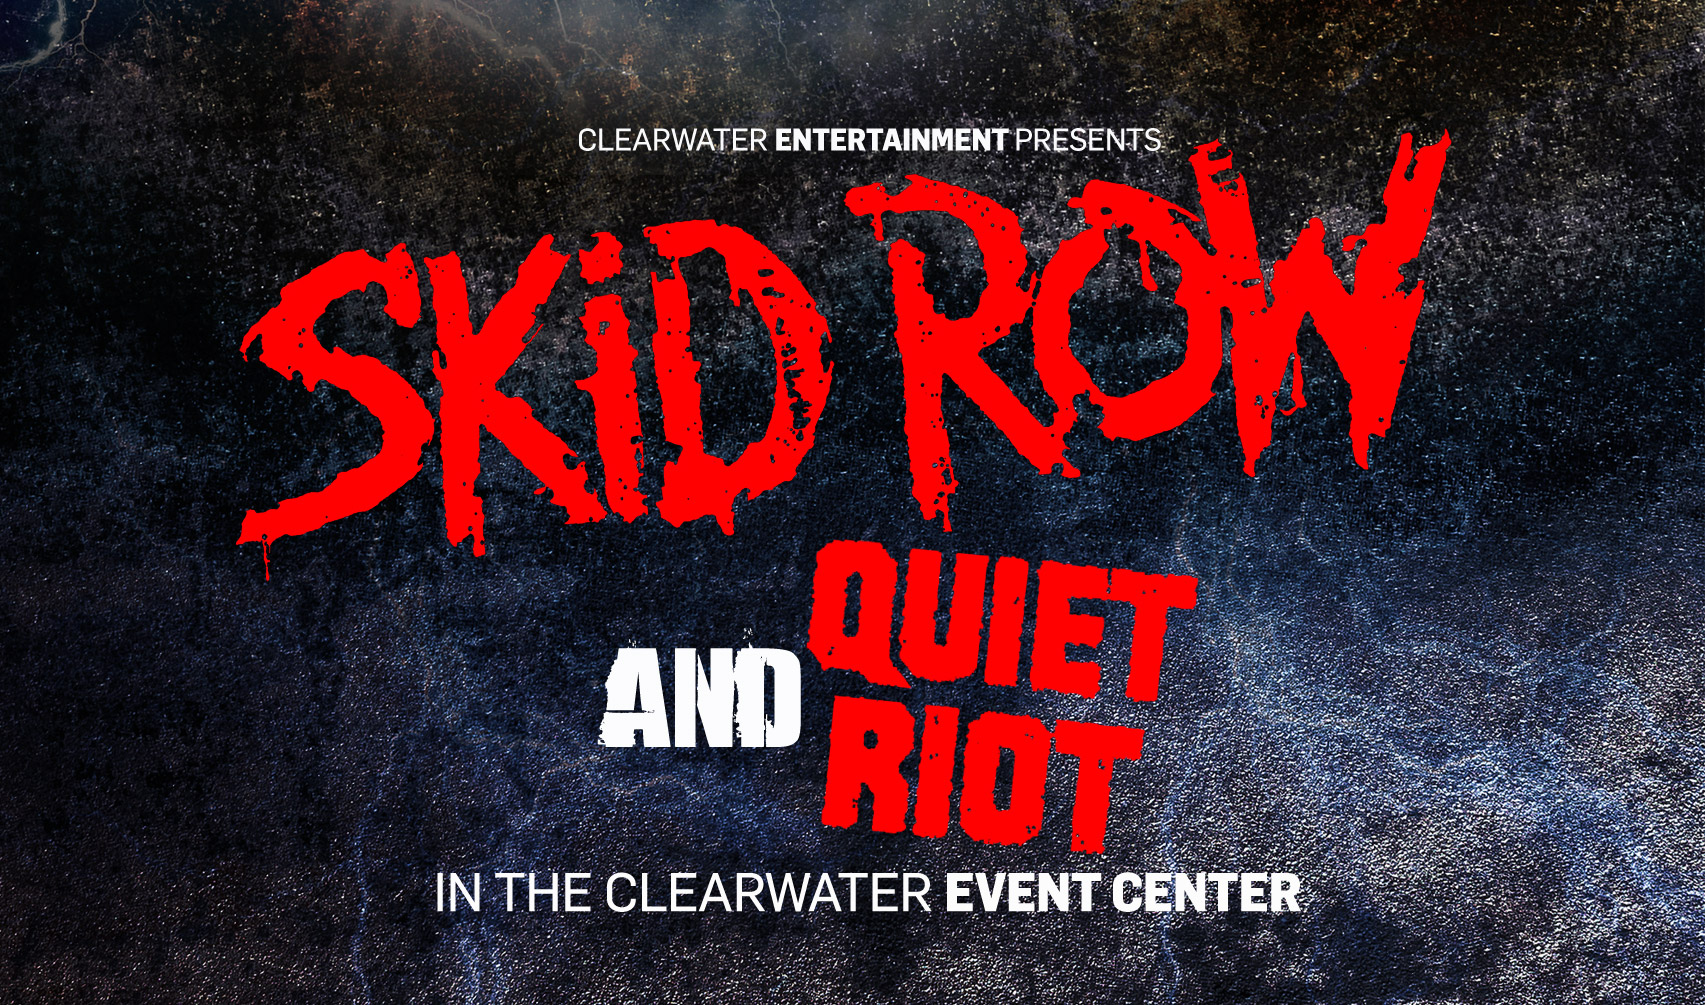 Skid Row & Quiet Riot @ Clearwater Casino Resort